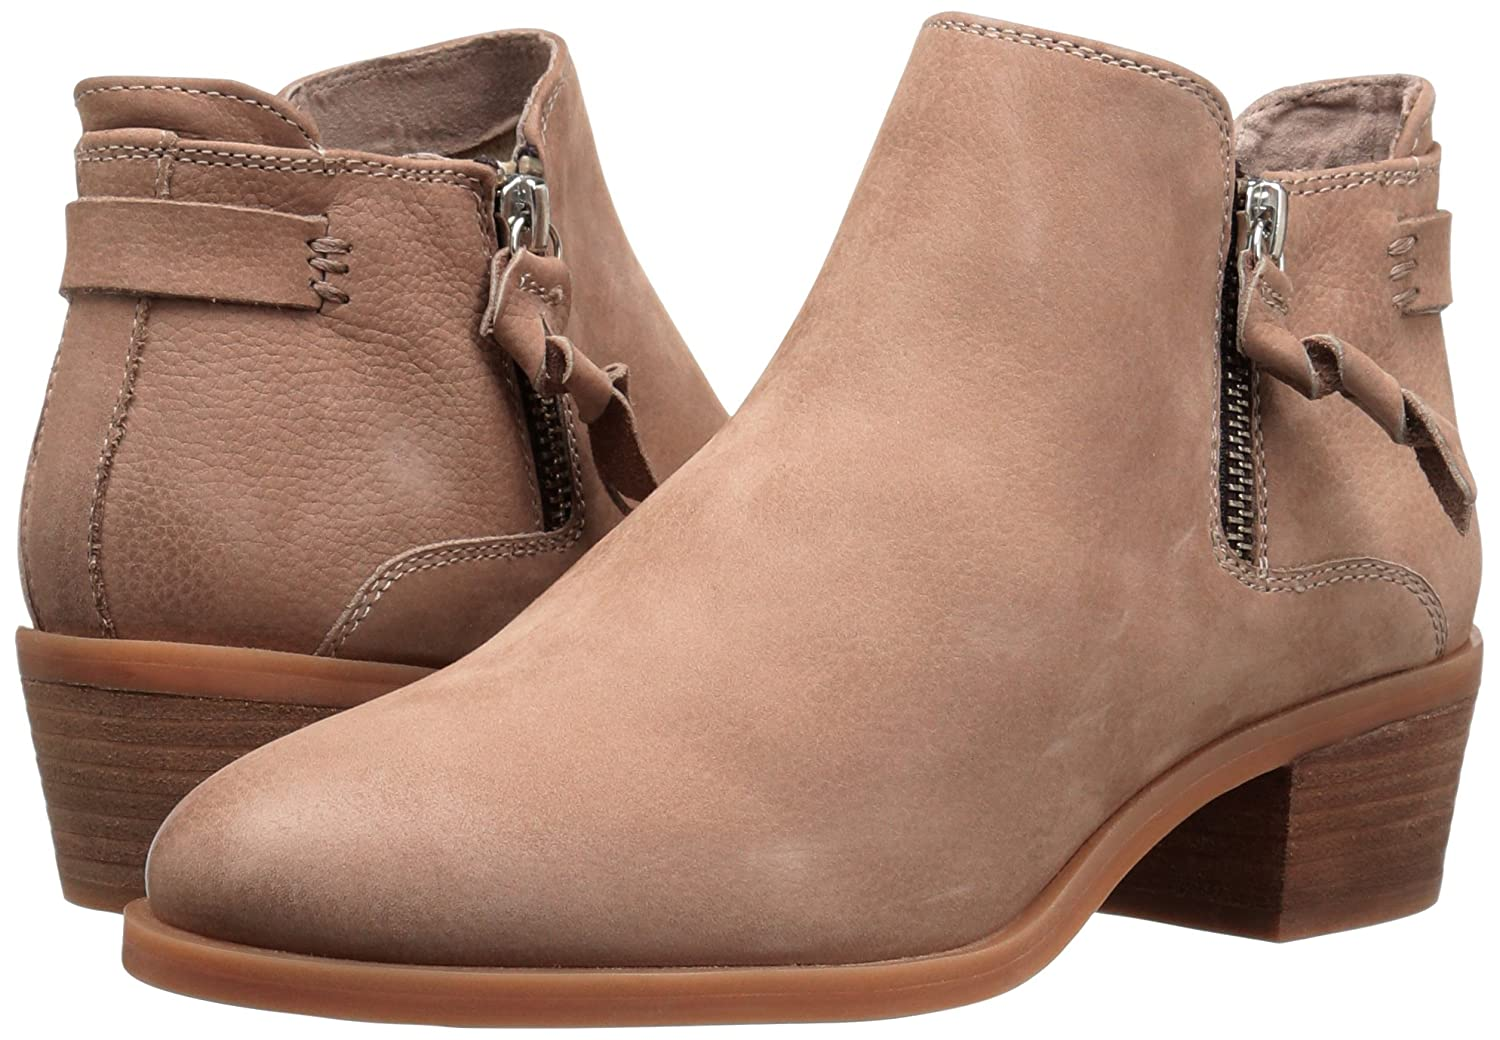 Women's Kyle Ankle Bootie